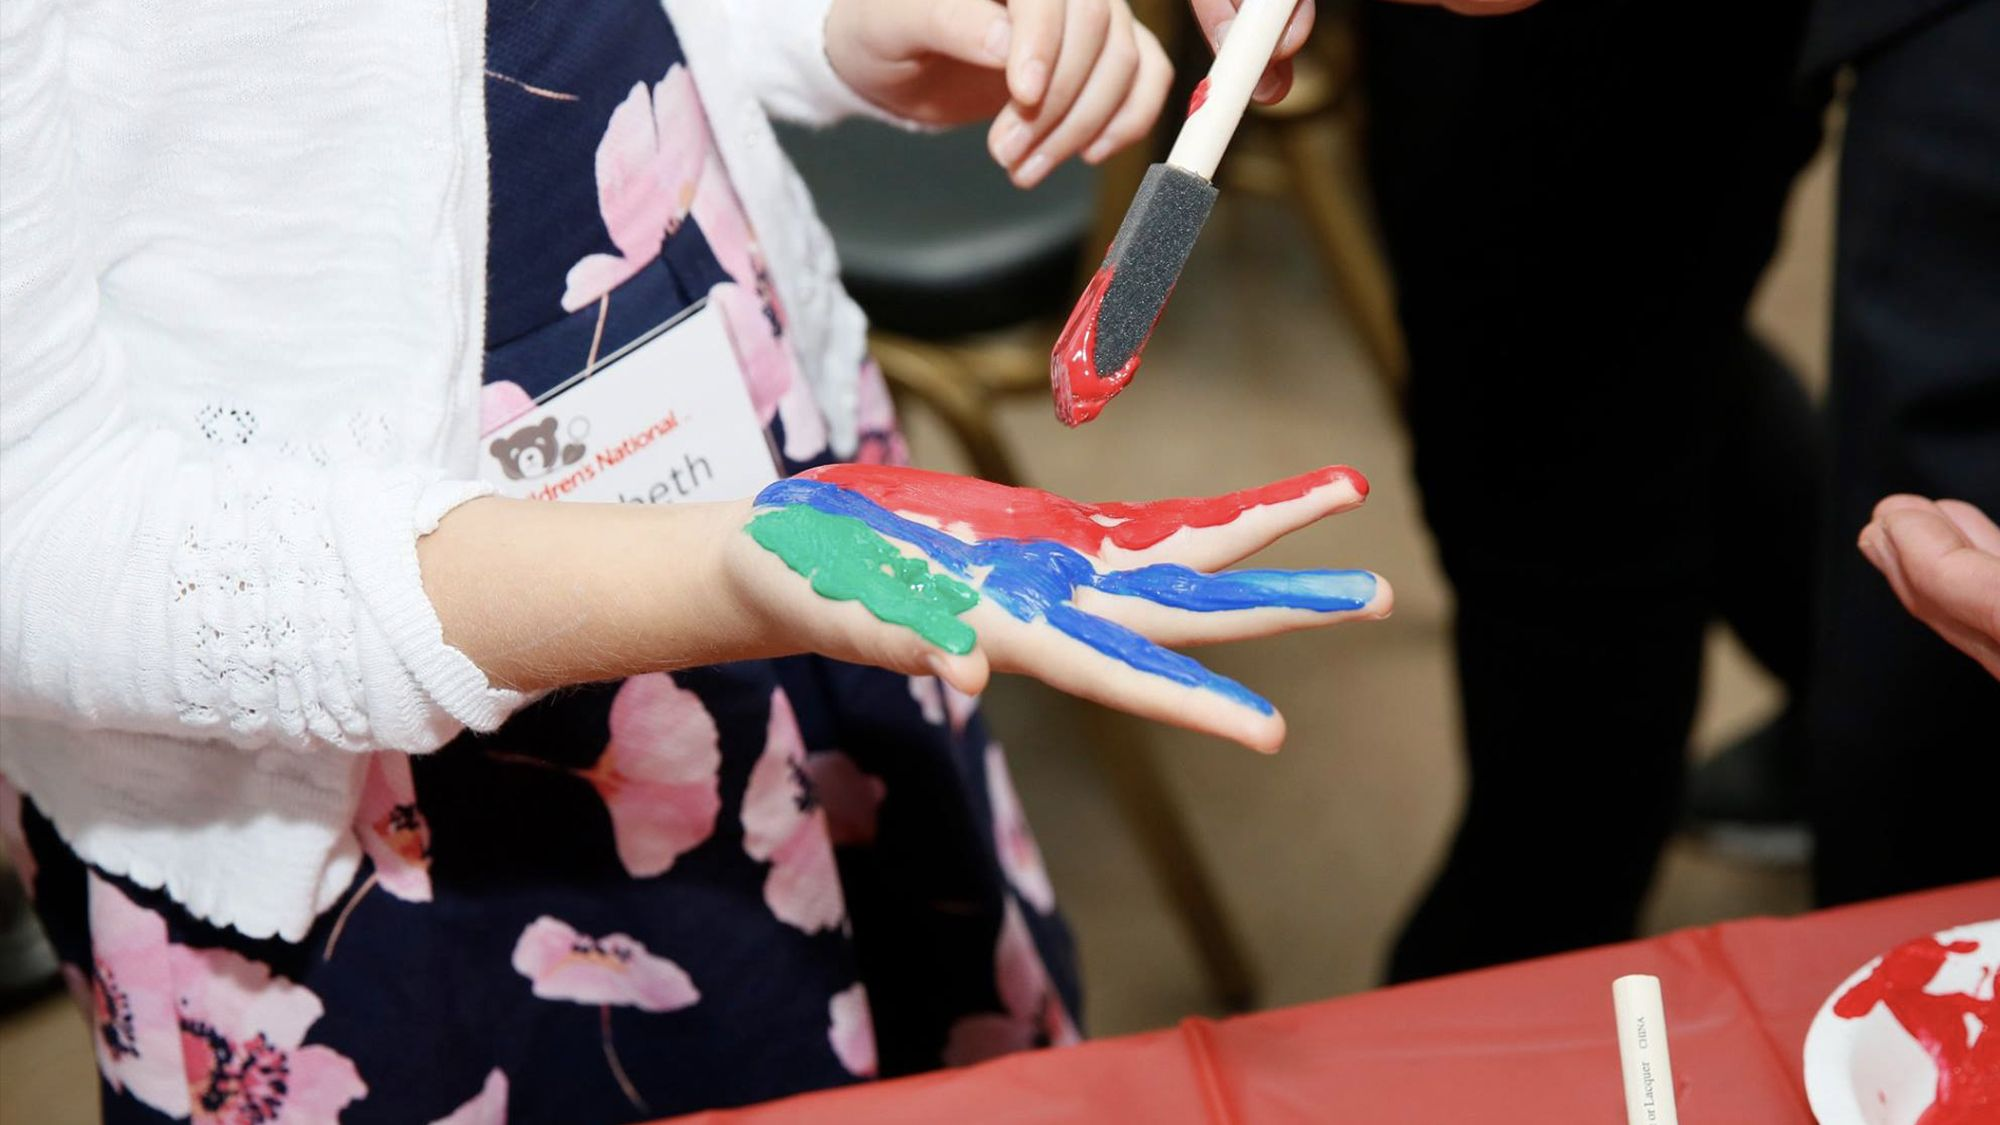 National Youth Ambassador Elizabeth puts red blue and green paint on her hand at a Hope on Wheels event